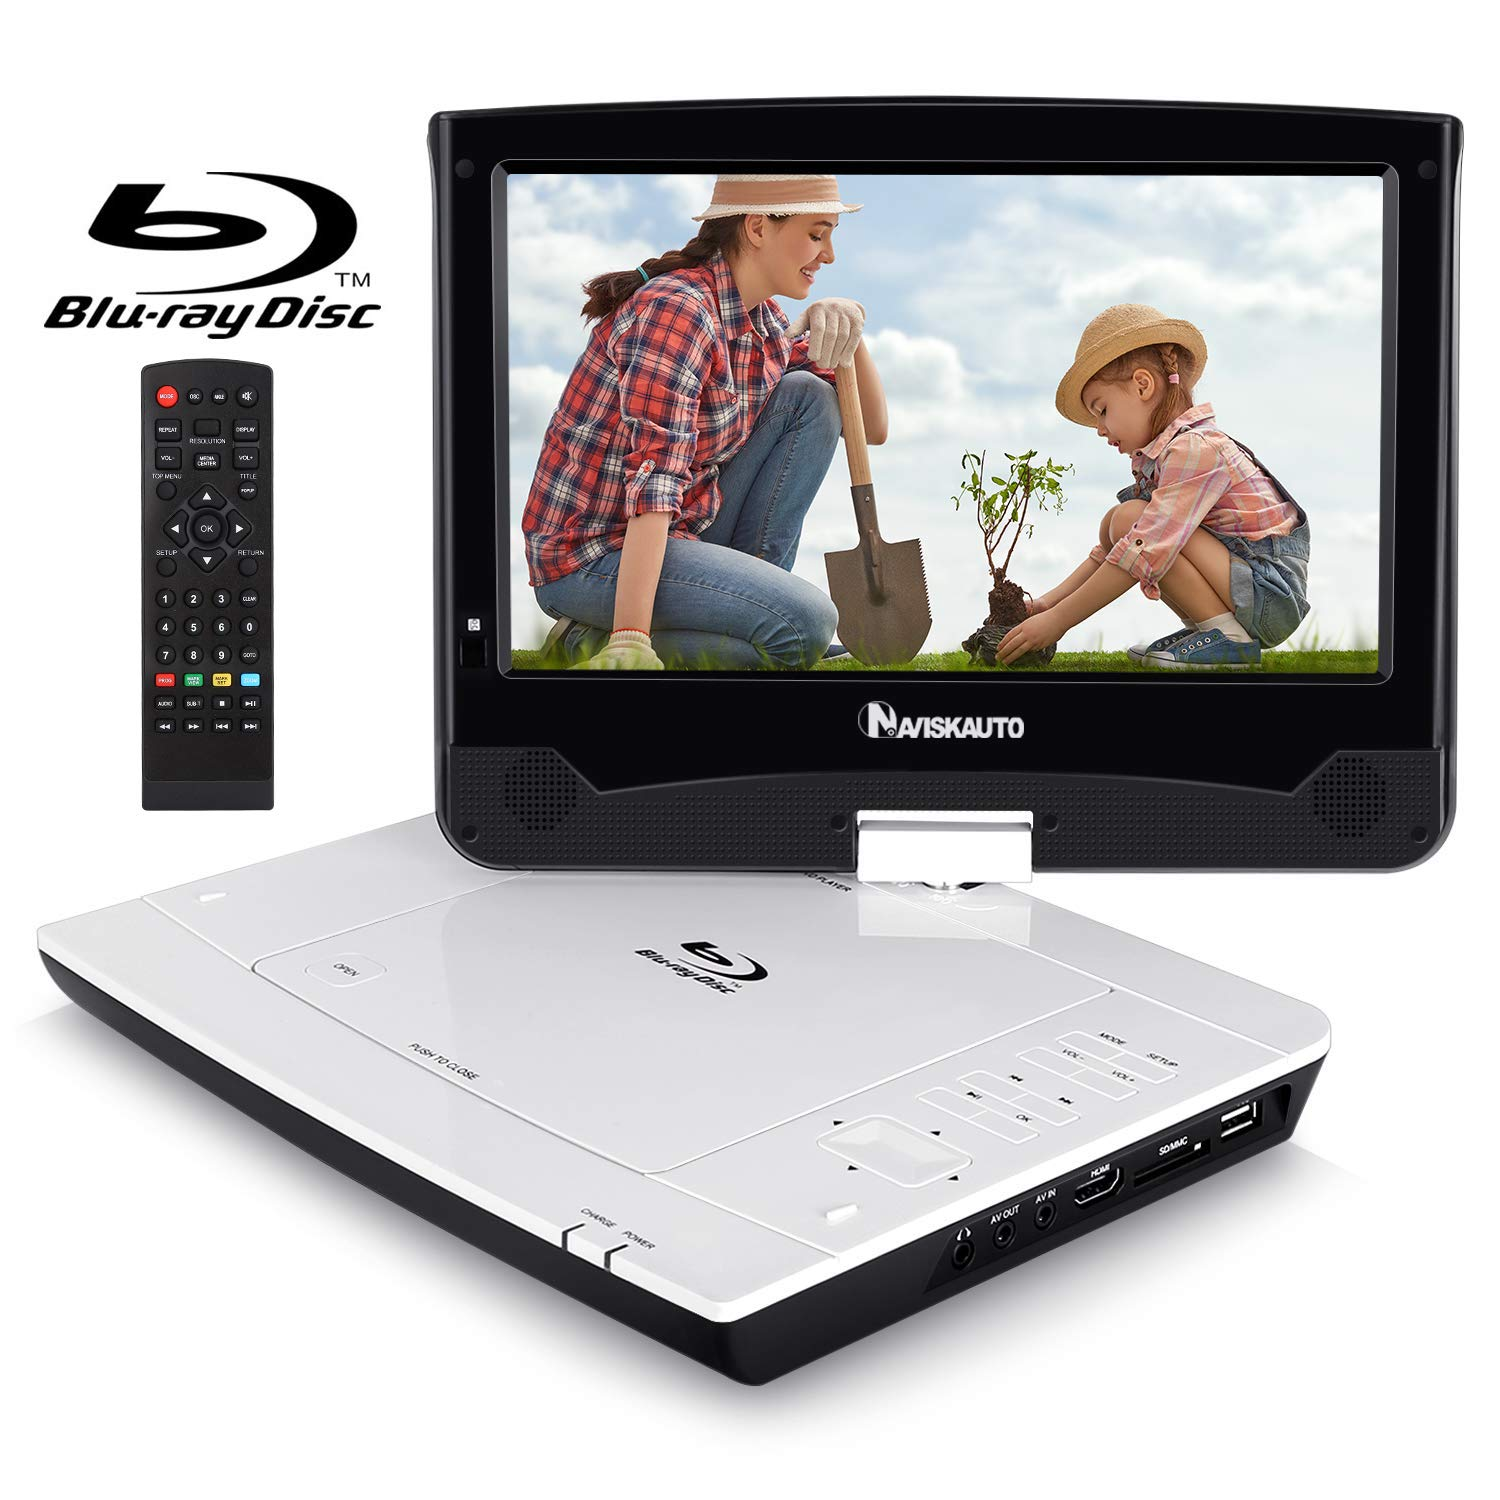 10.1'' Portable Blu Ray DVD Player with Rechargeable Battery Support HDMI Output, 1080P Video, Sync Screen, AV Out & in, Last Memory, Dolby Audio, USB SD - NAVISKAUTO